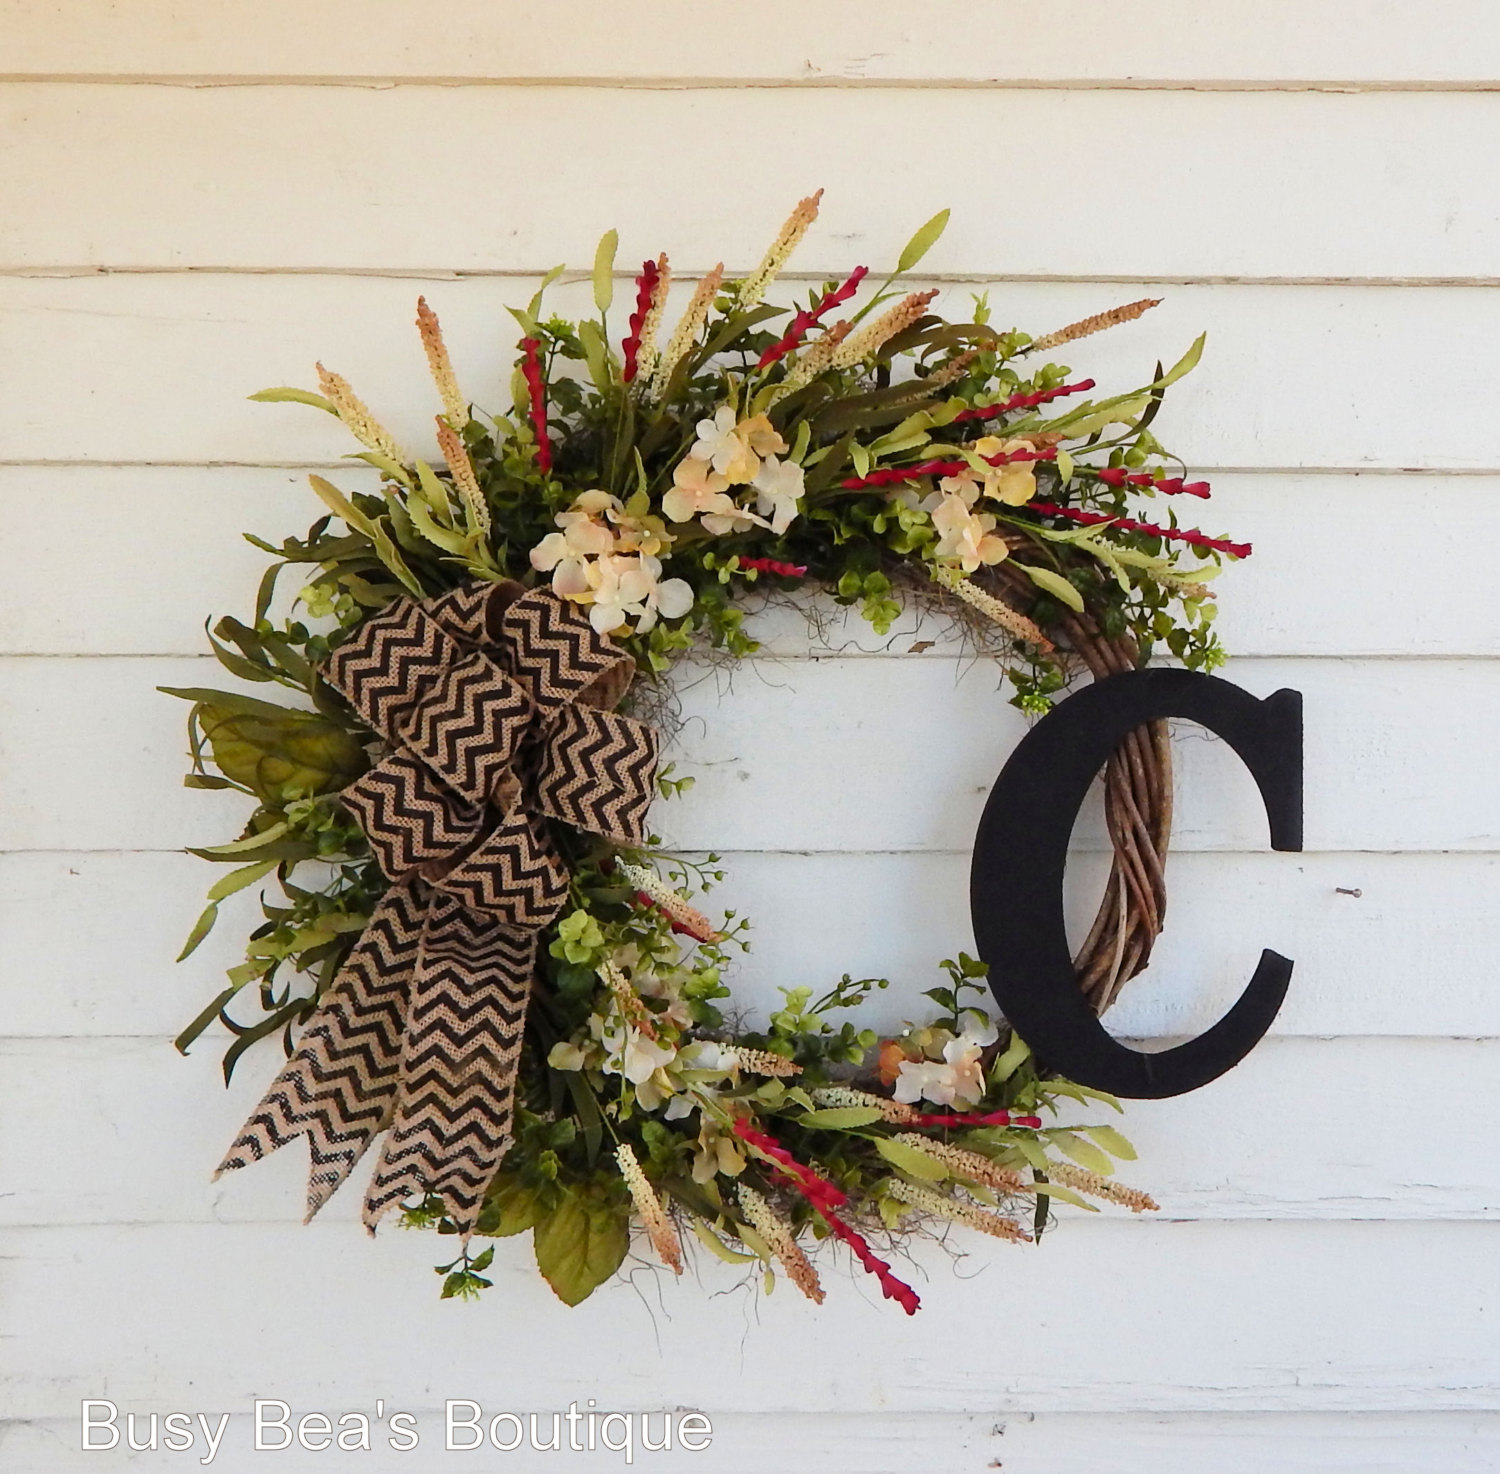 18 Whimsy Handmade Summer Wreath Designs For A Fun Welcome